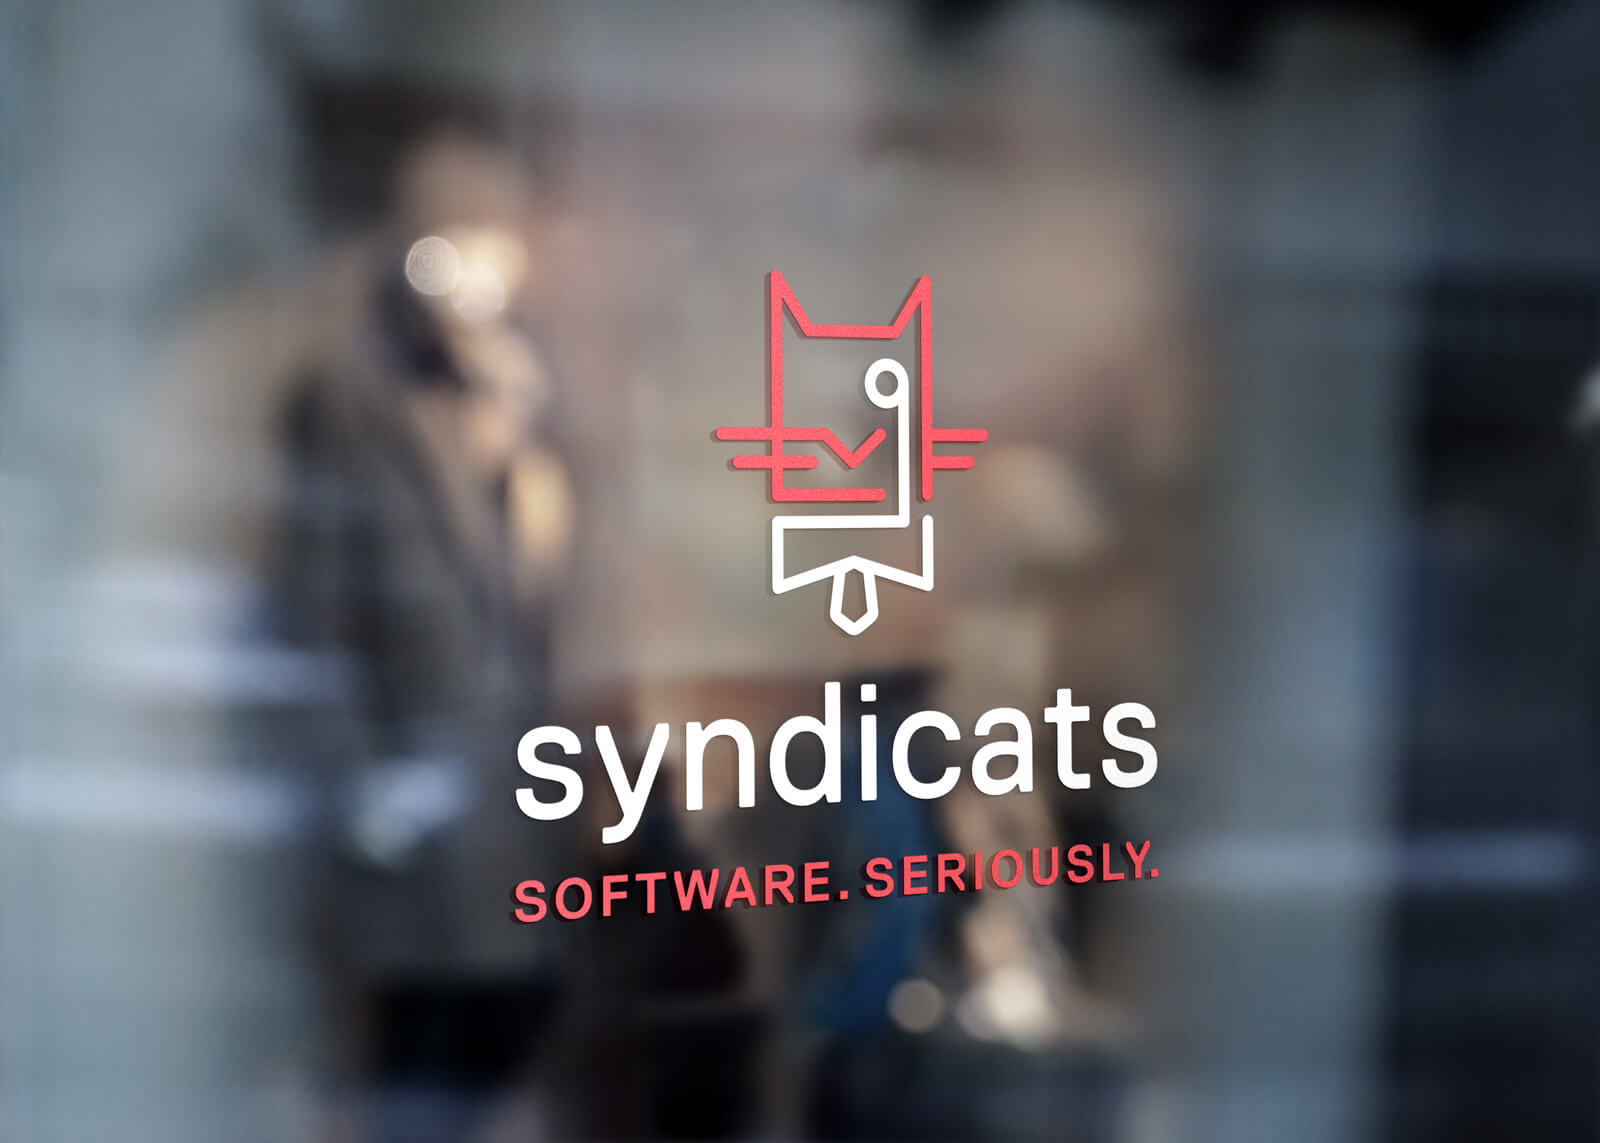 Syndicats Branding Logo Window